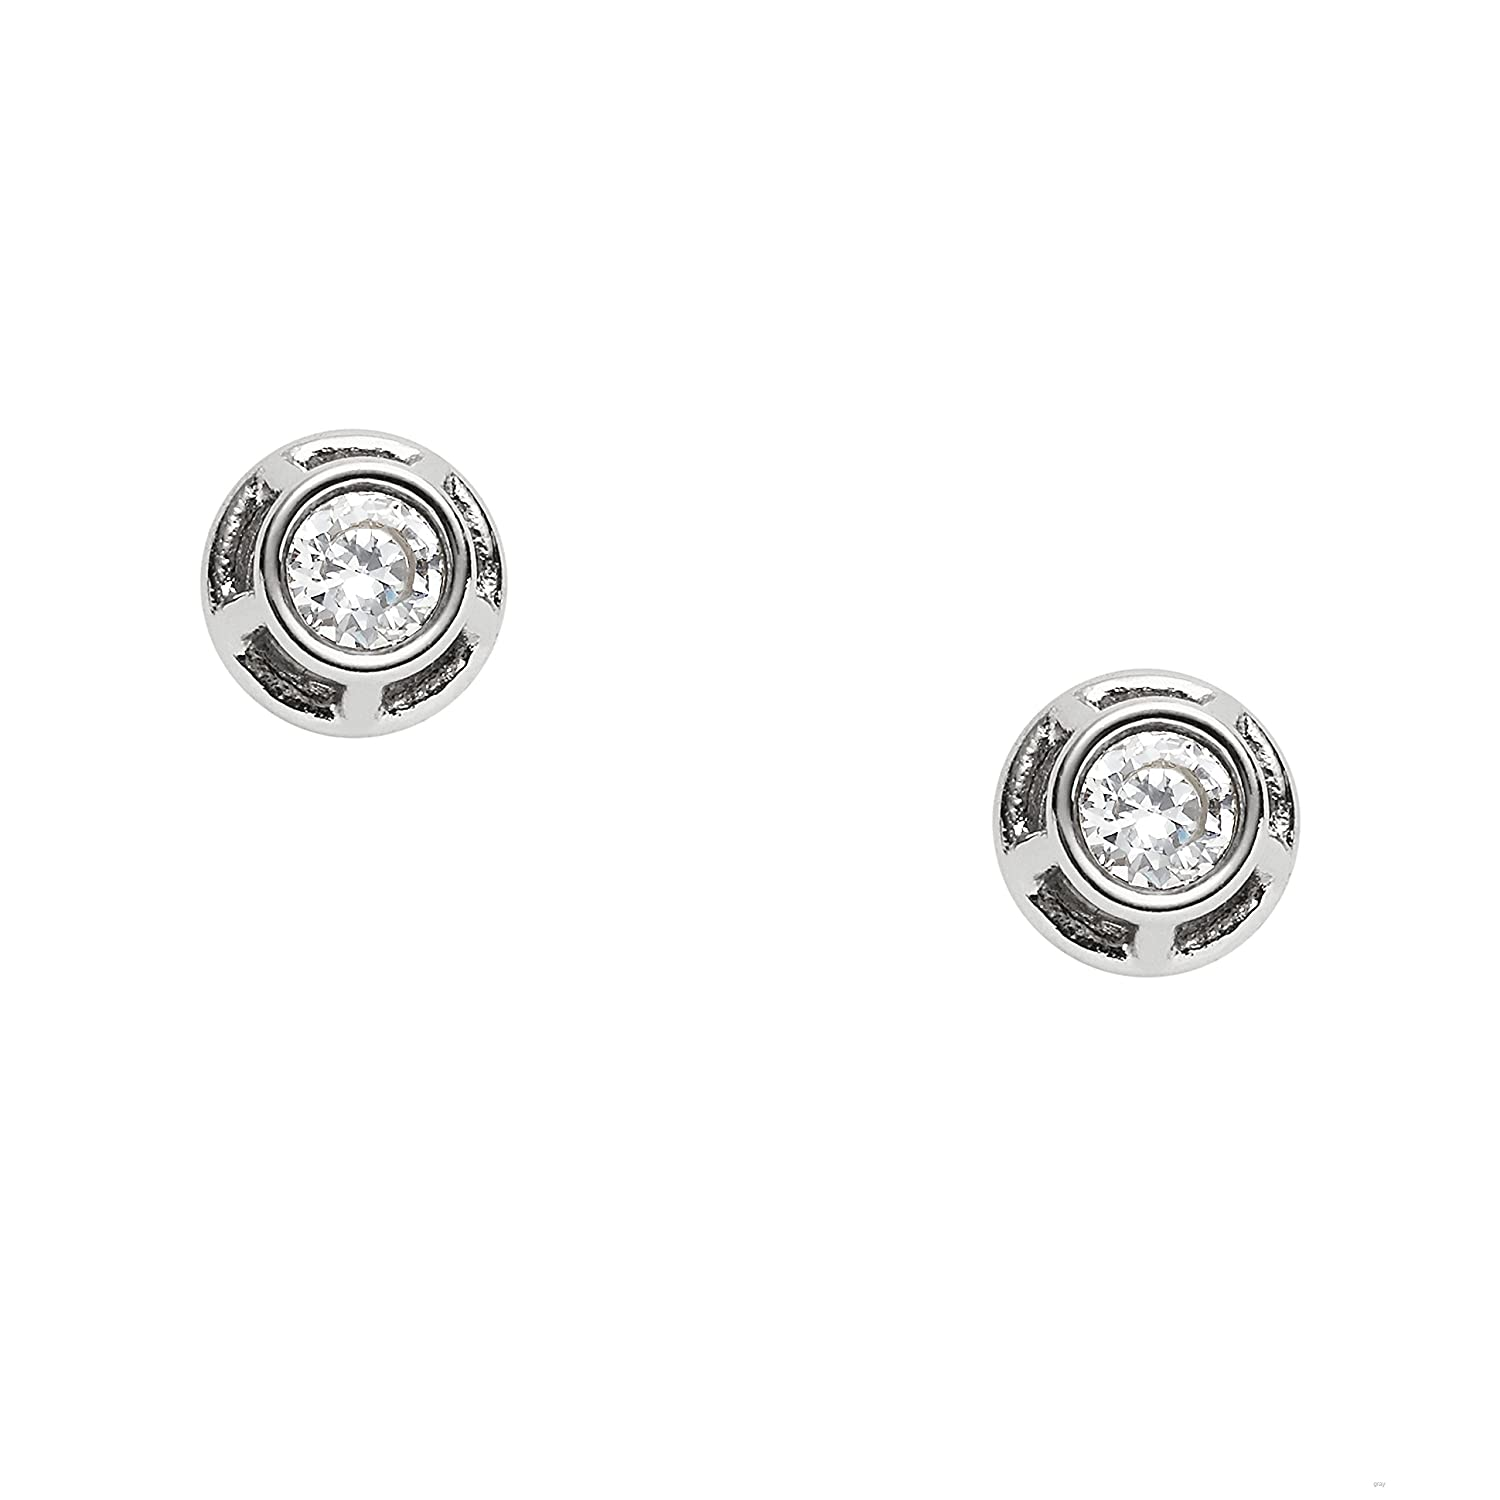 Fossil Women's Earrings JF02411040 BaagdK8Z98